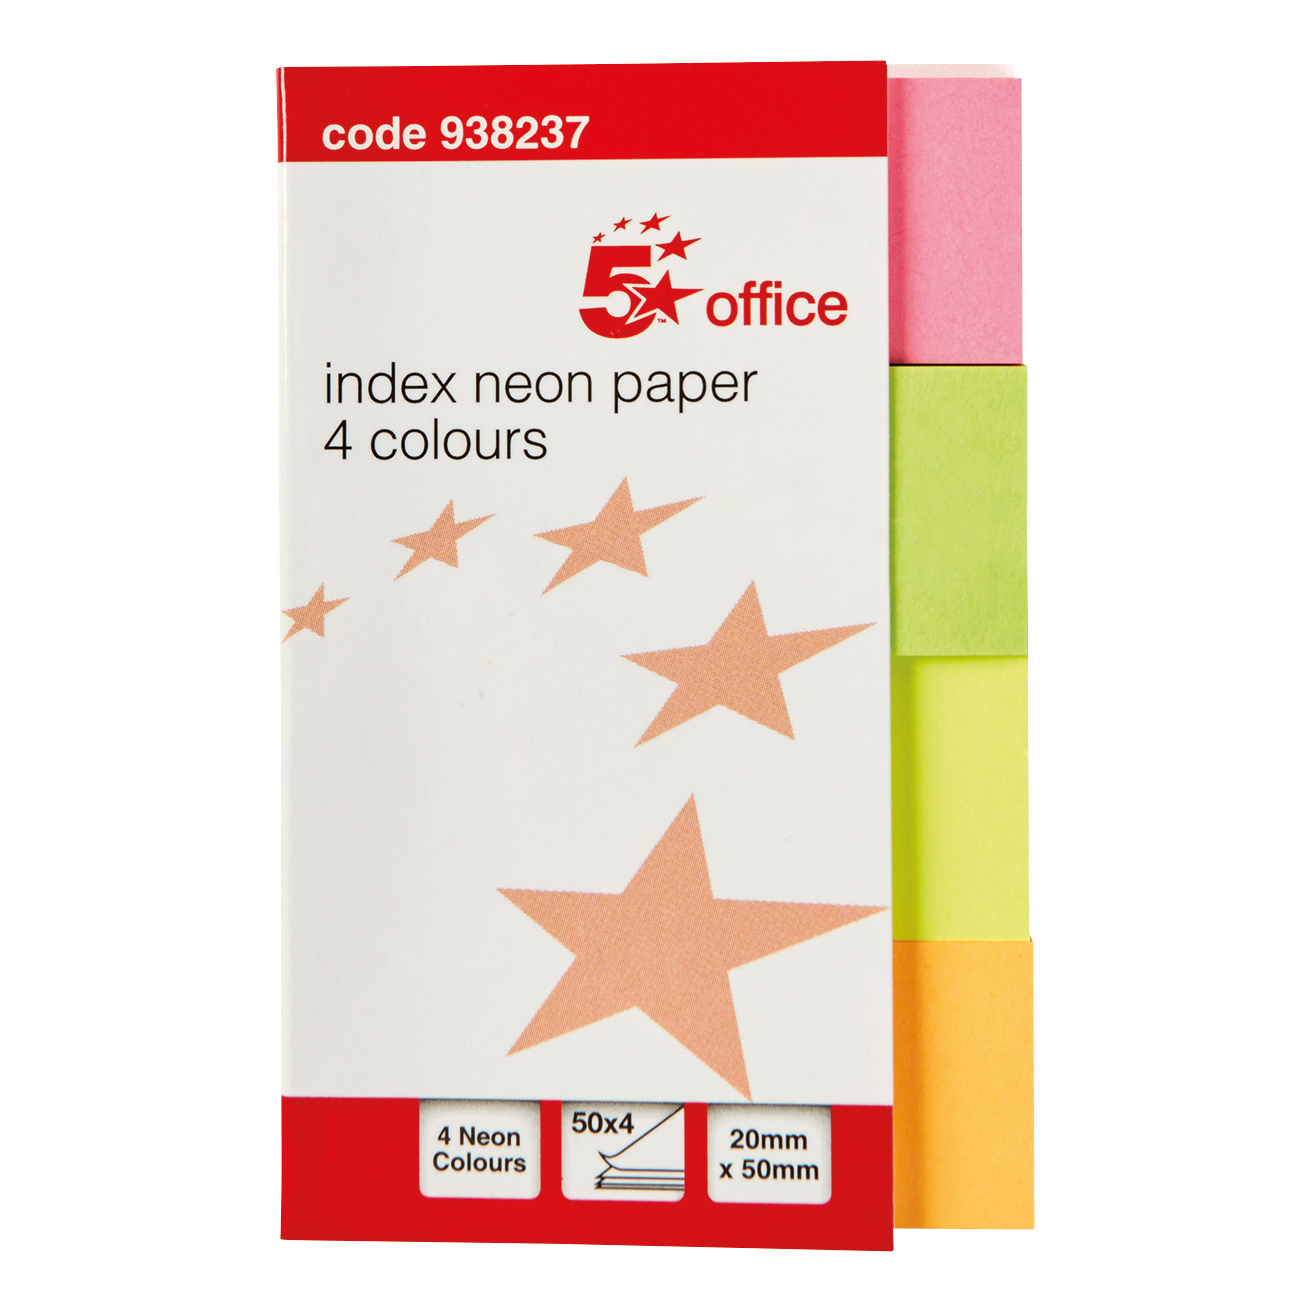 5 Star Office Index Neon Paper Page Markers 20x50mm 50 Sheets per Colour Assorted Pack 5